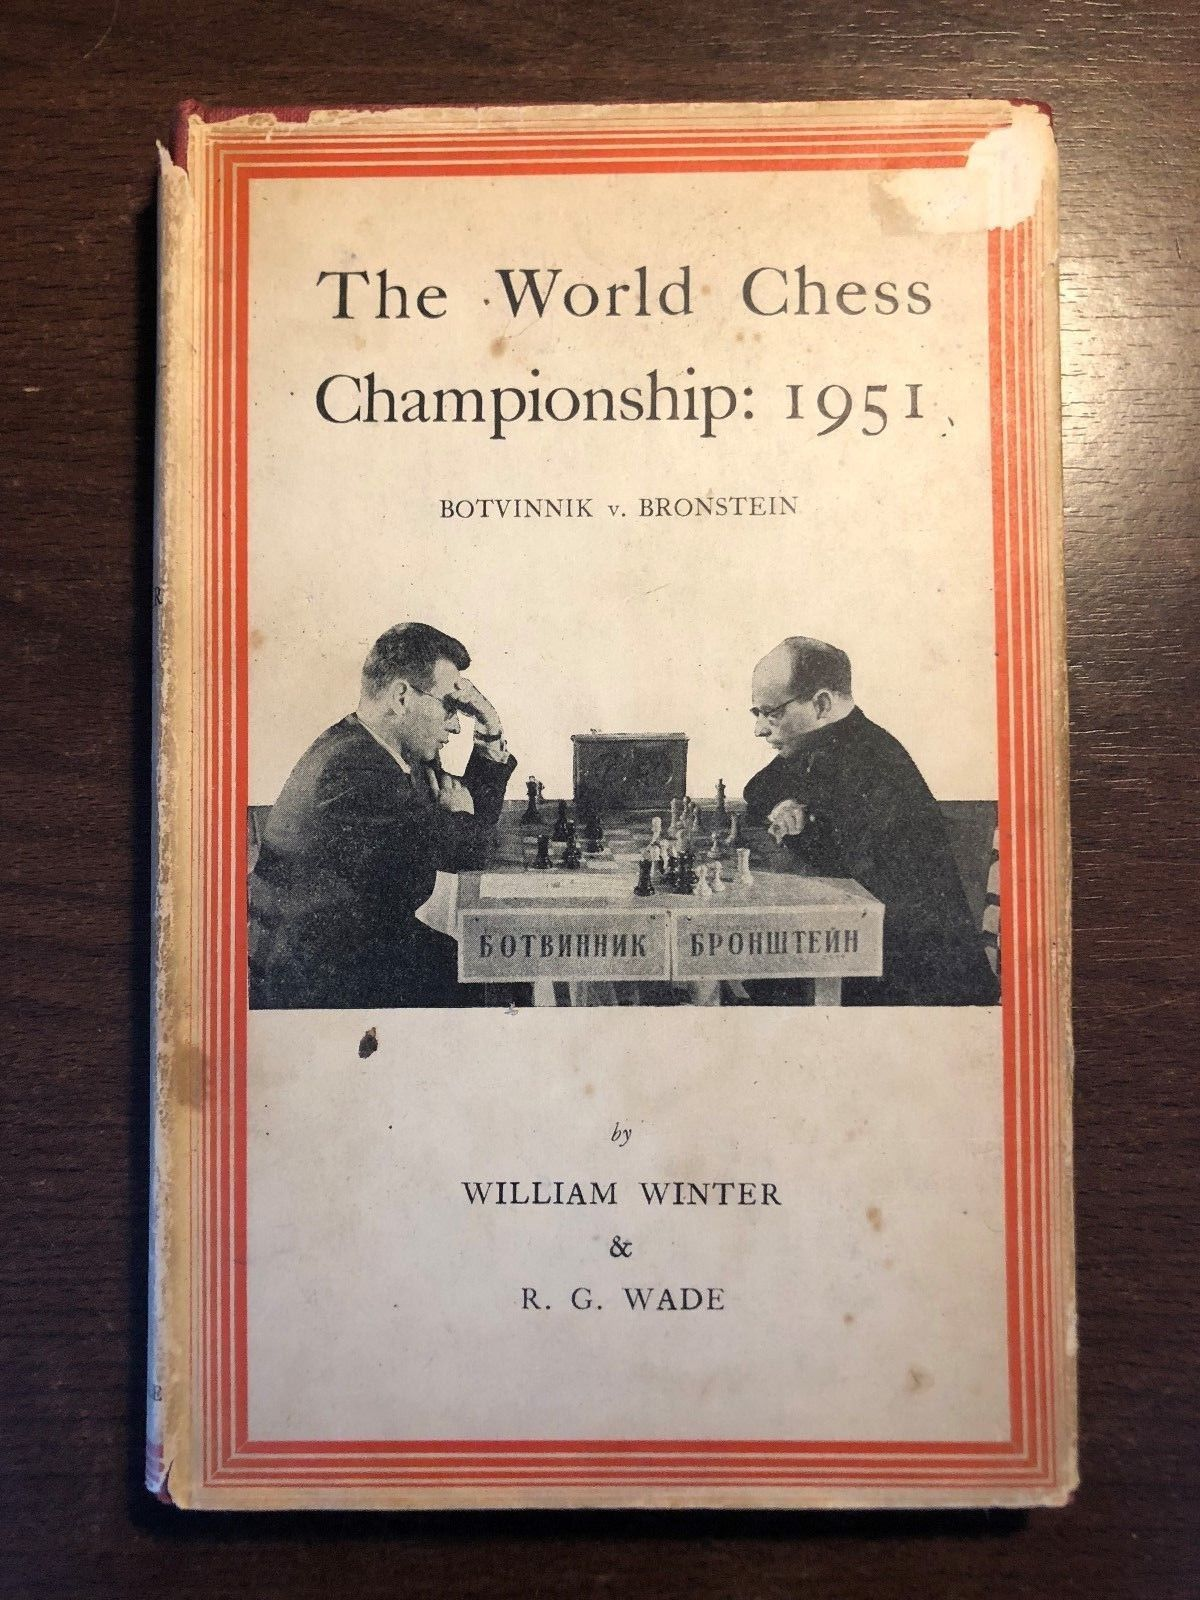 The World Chess Championship 1951